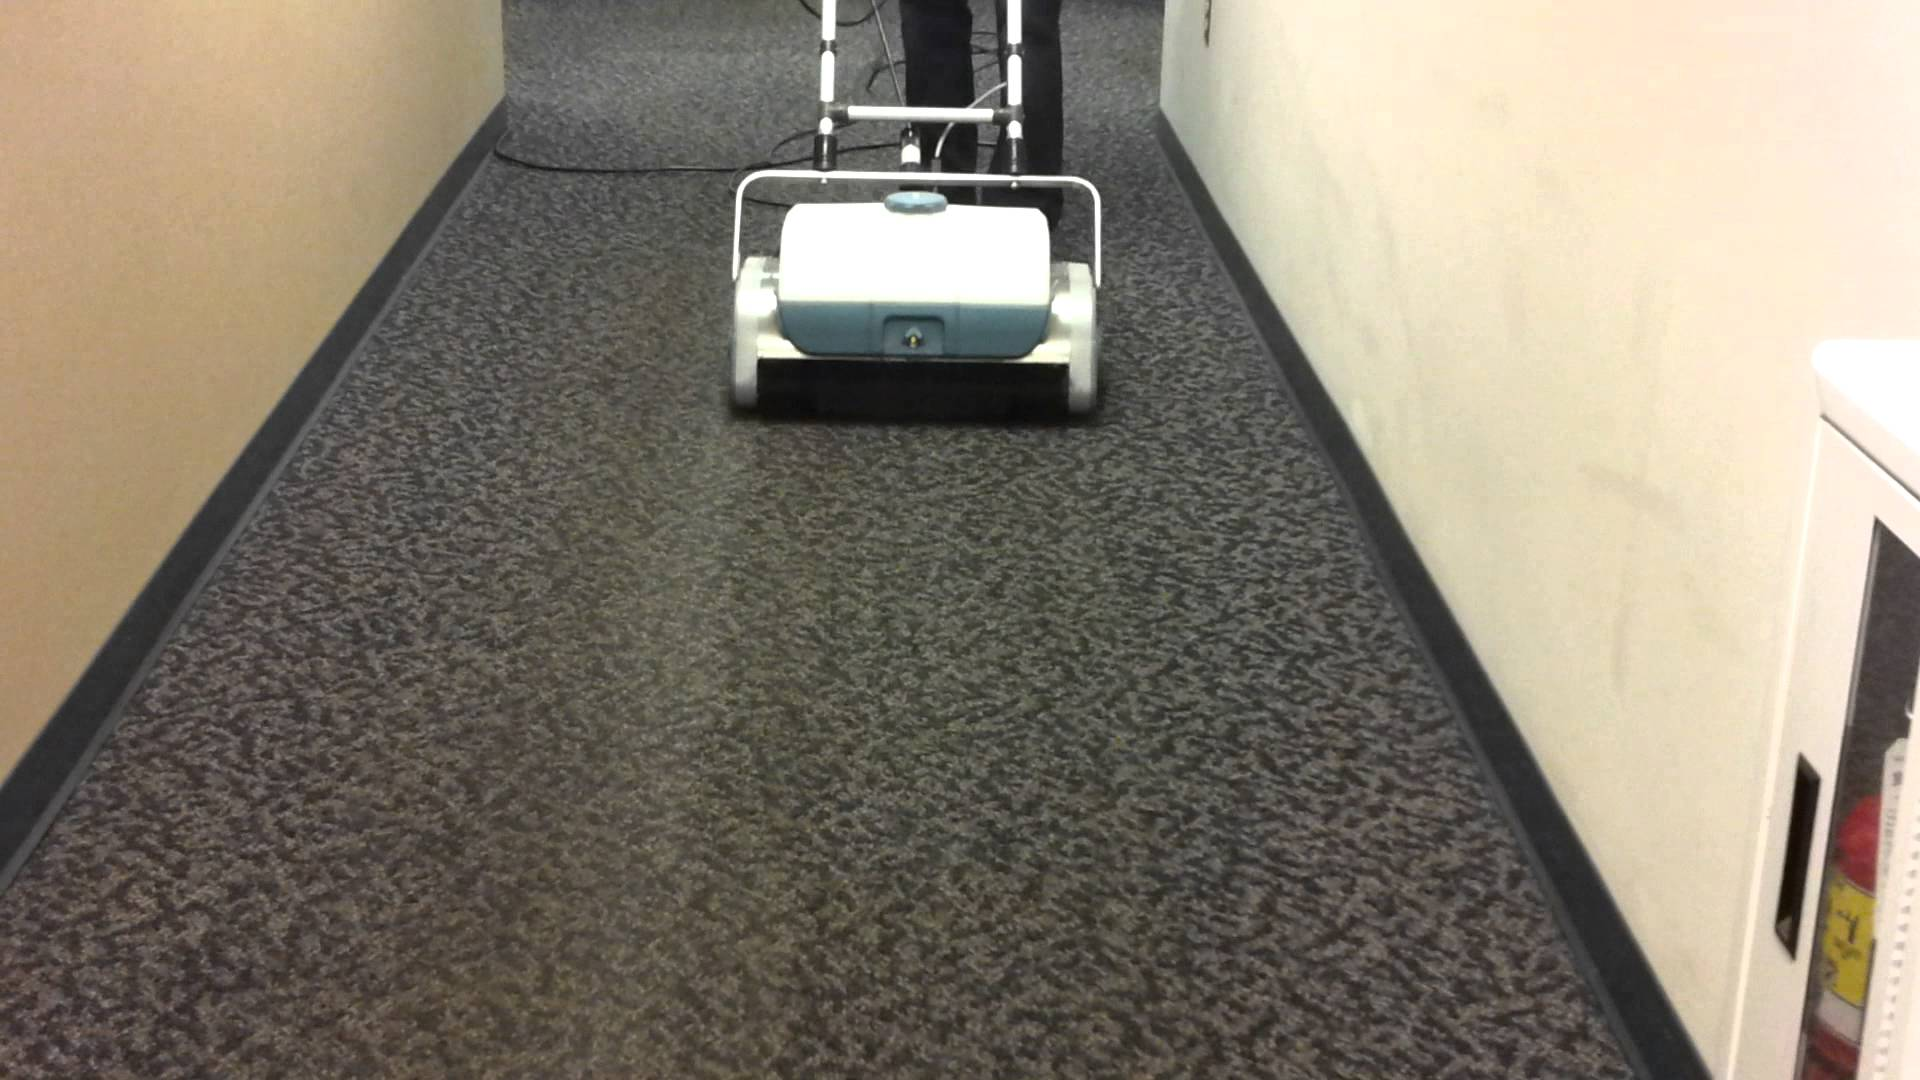 Phase 2 Lombard Carpet Cleaning Services second image